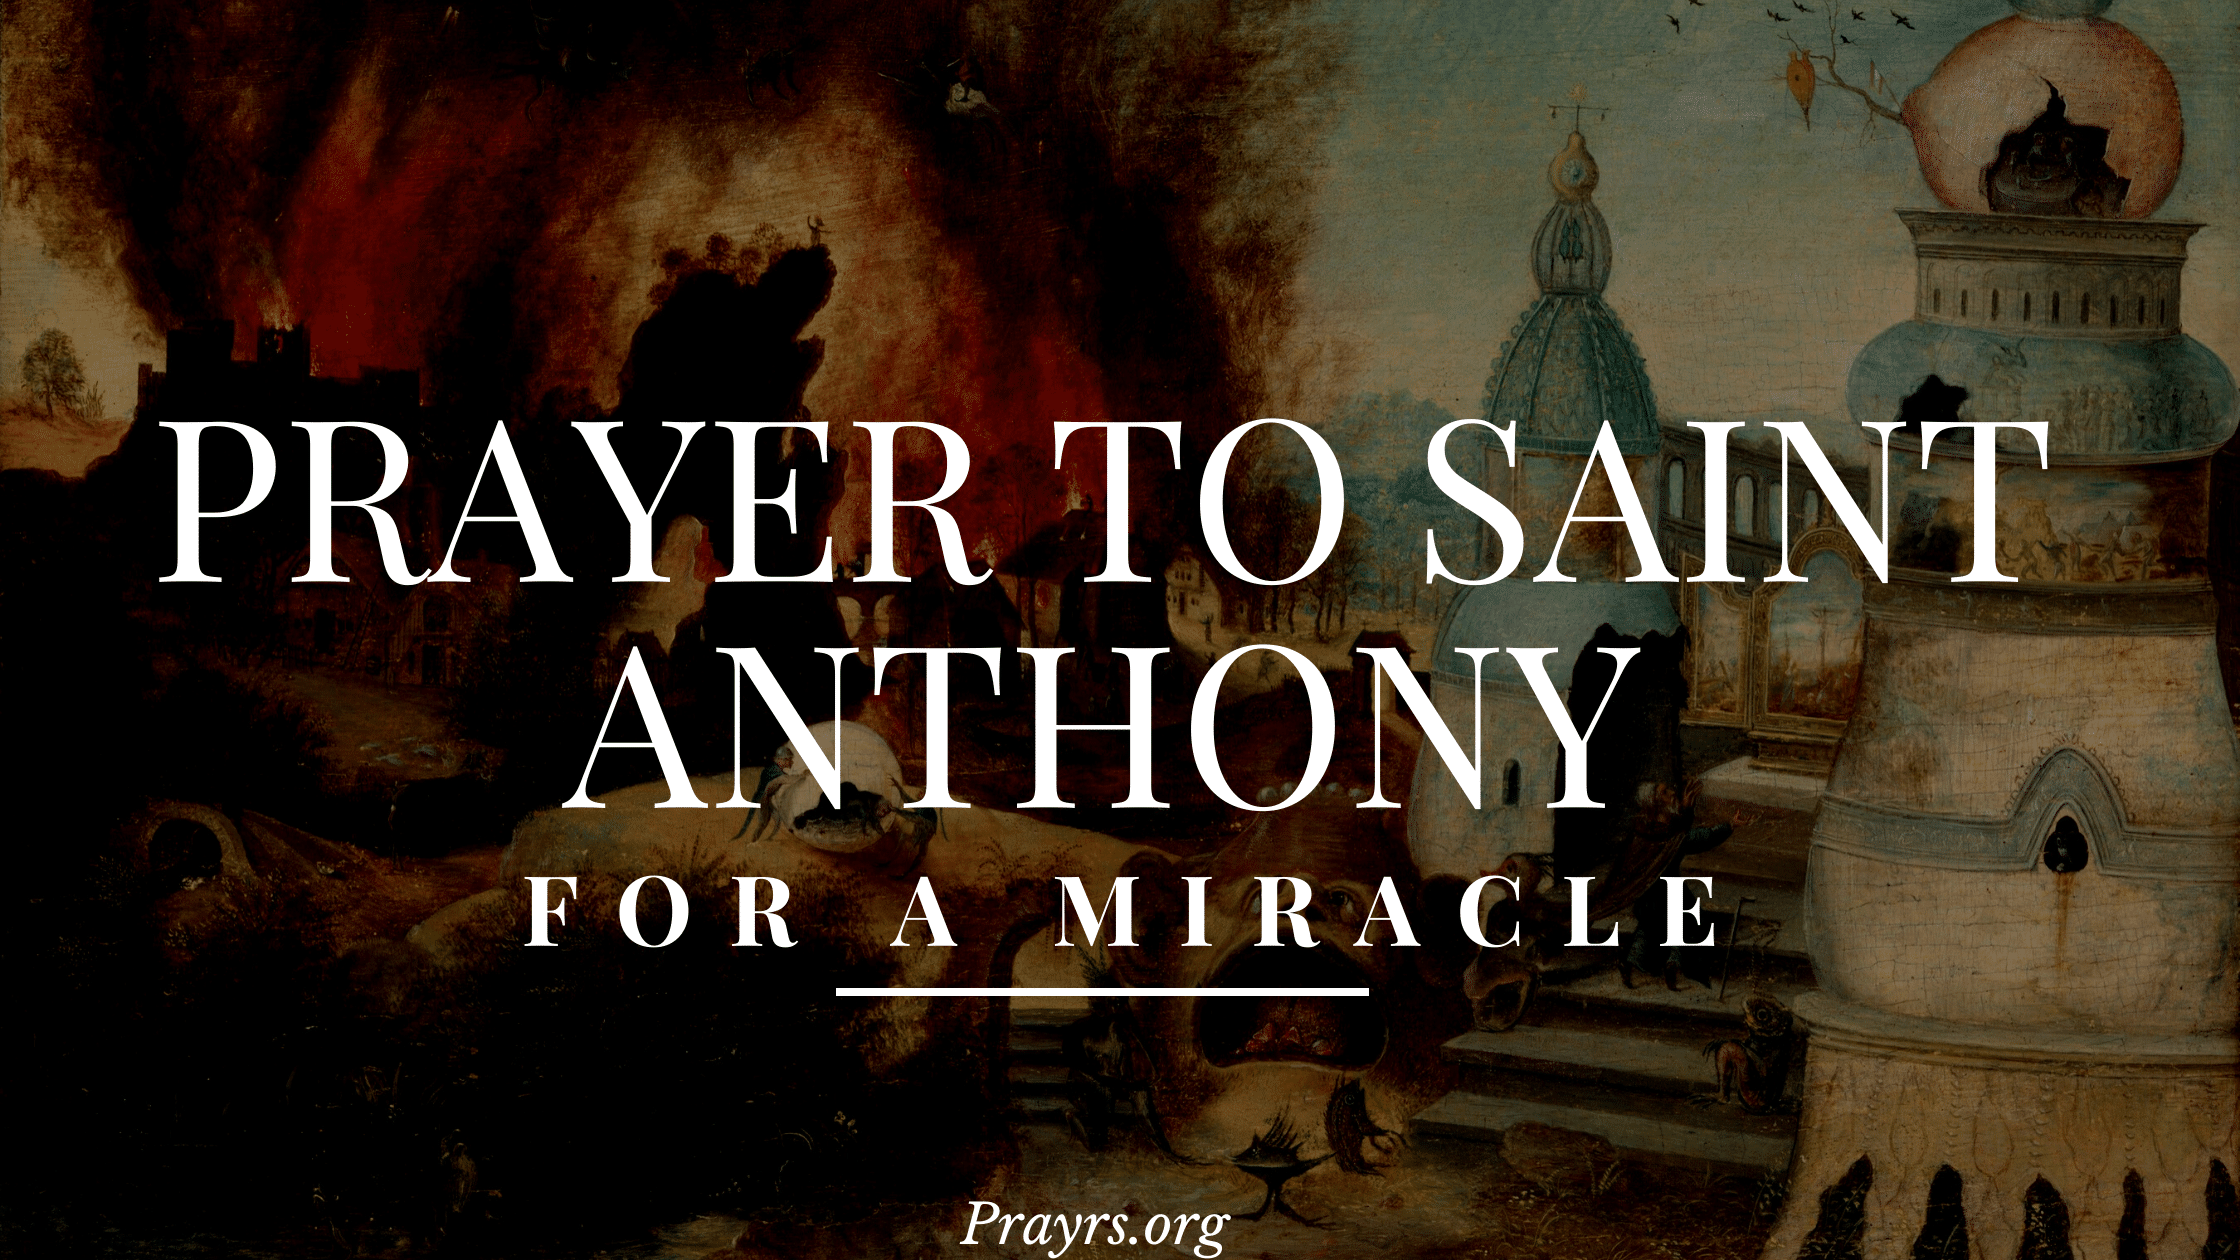 Prayer to Saint Anthony for a Miracle